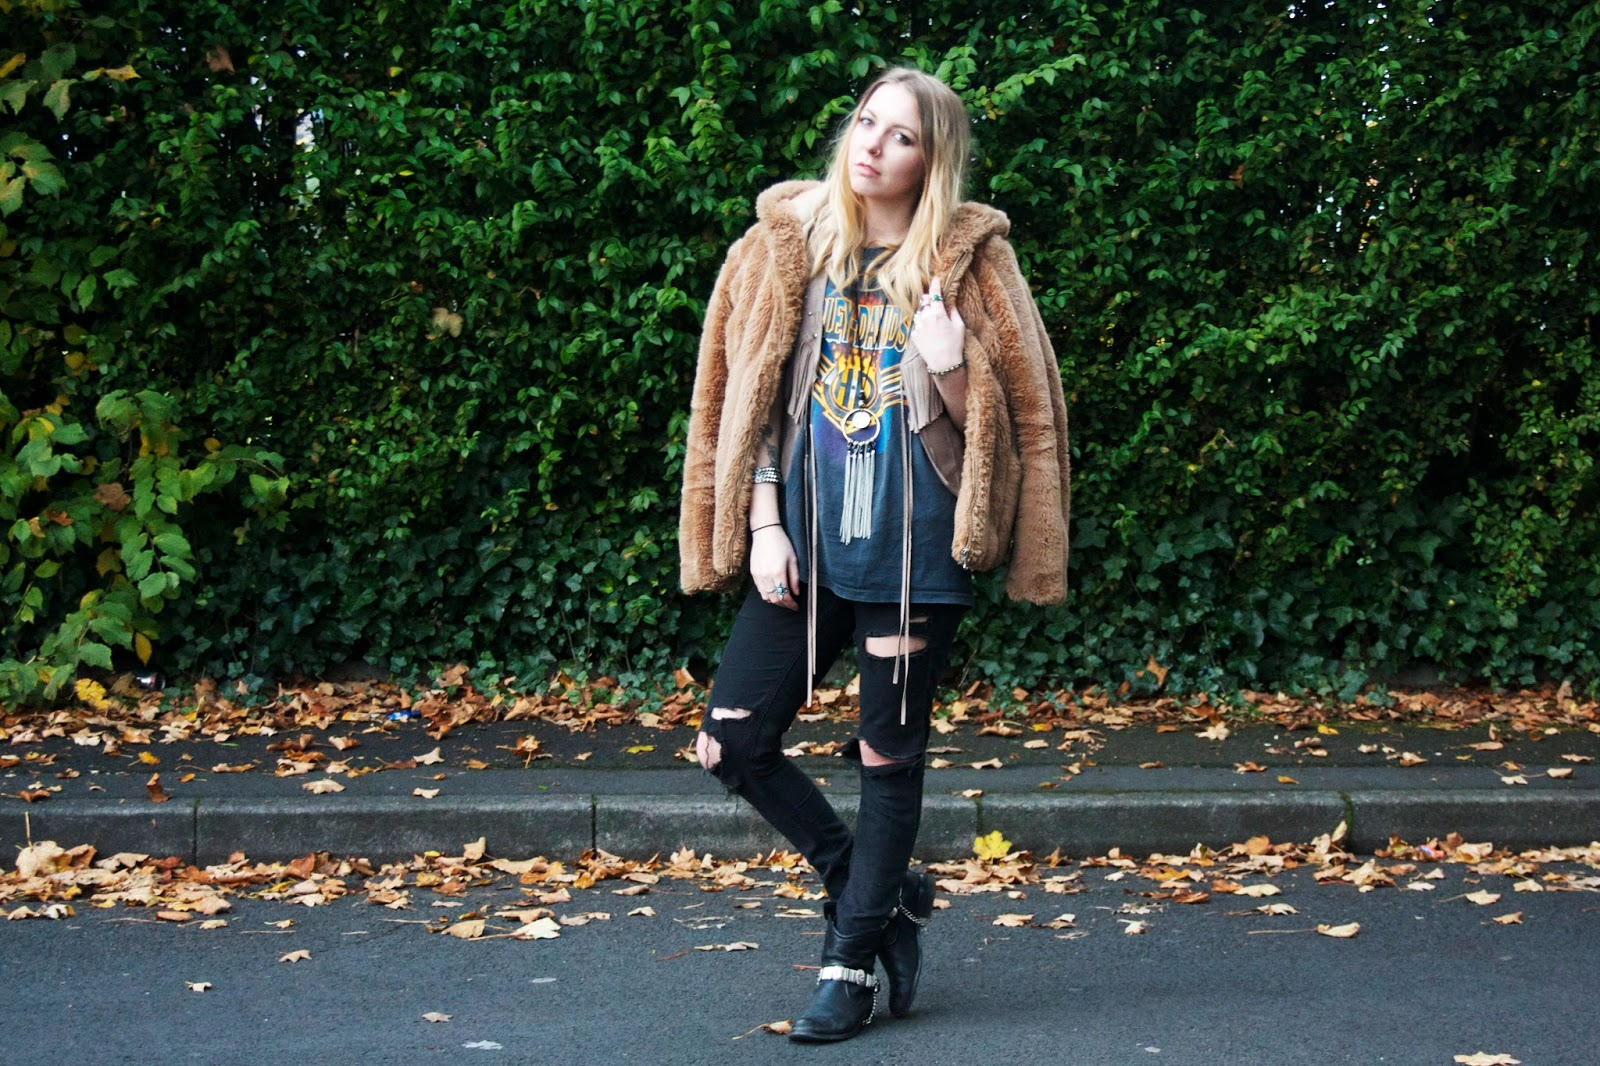 An outfit of the day blog post featuring faux fur, ripped jeans, and harley davidson